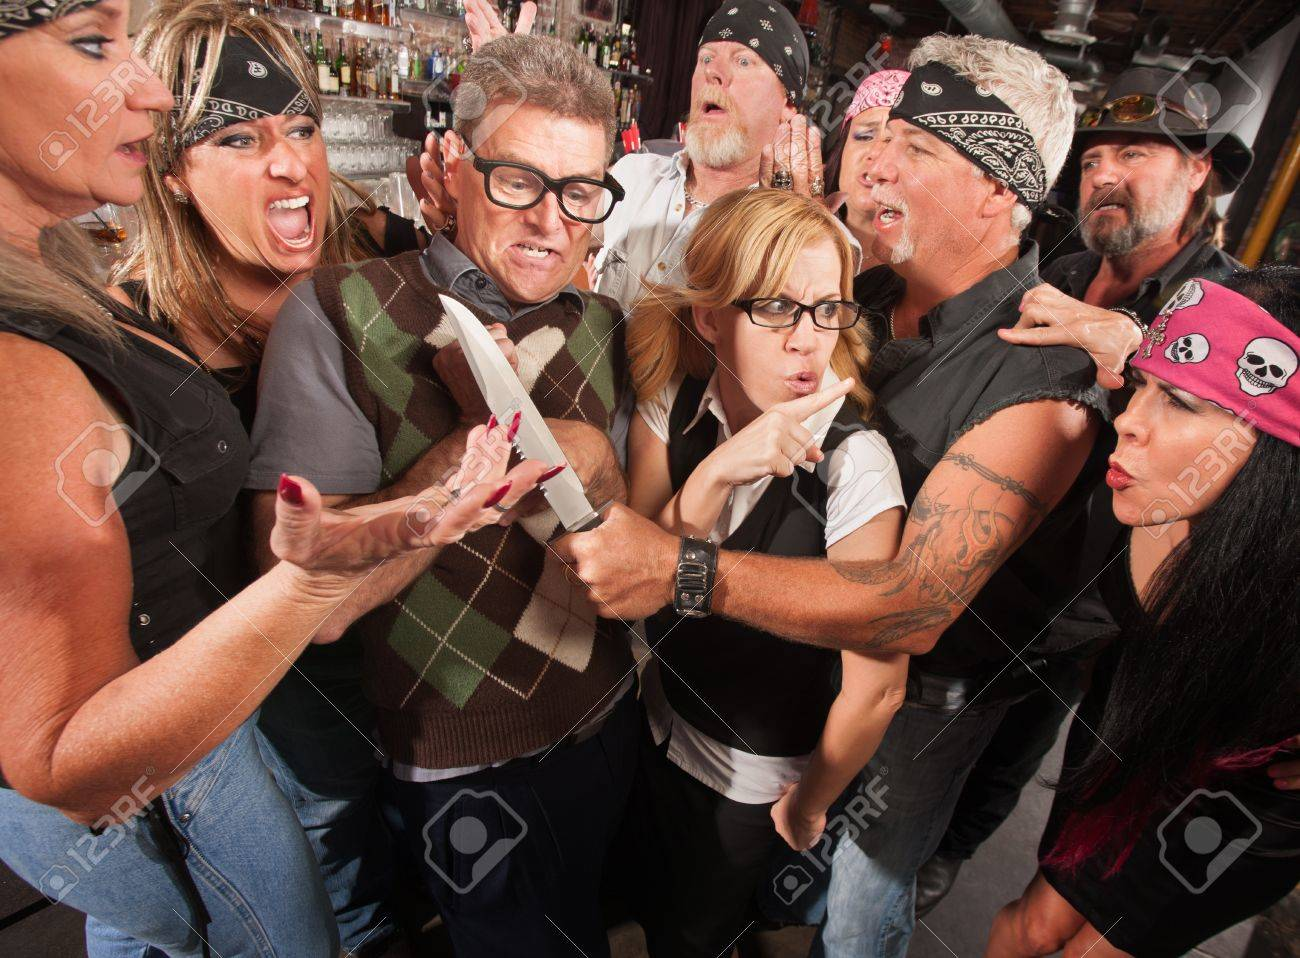 Man with biker gang threatening nerd couple Stock Photo - 17591162